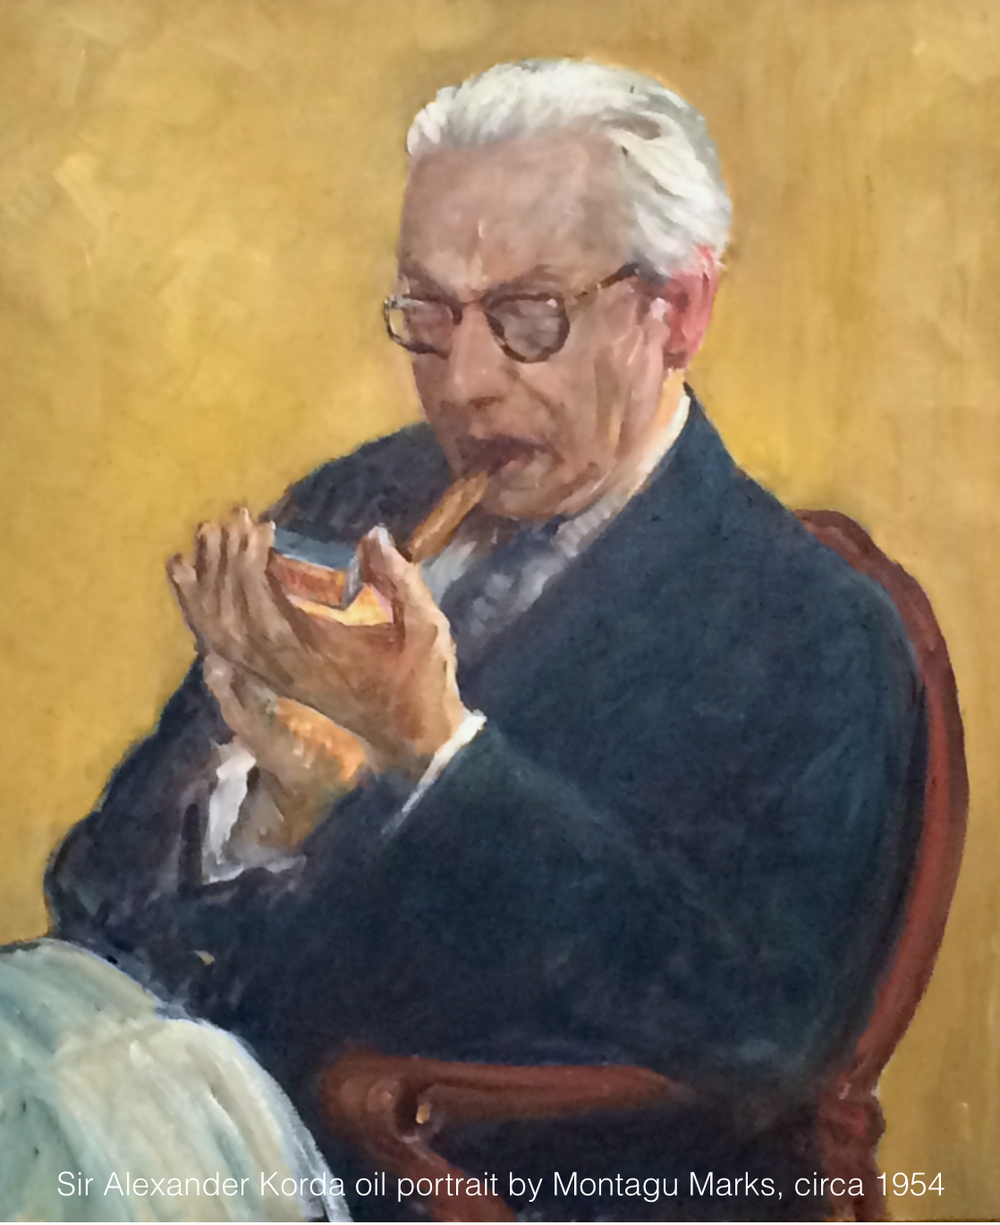 Alexander Korda portrait by Montagu Marks, circa 1954. Copyright Montagu Marks' Estate All Rights Reserved.